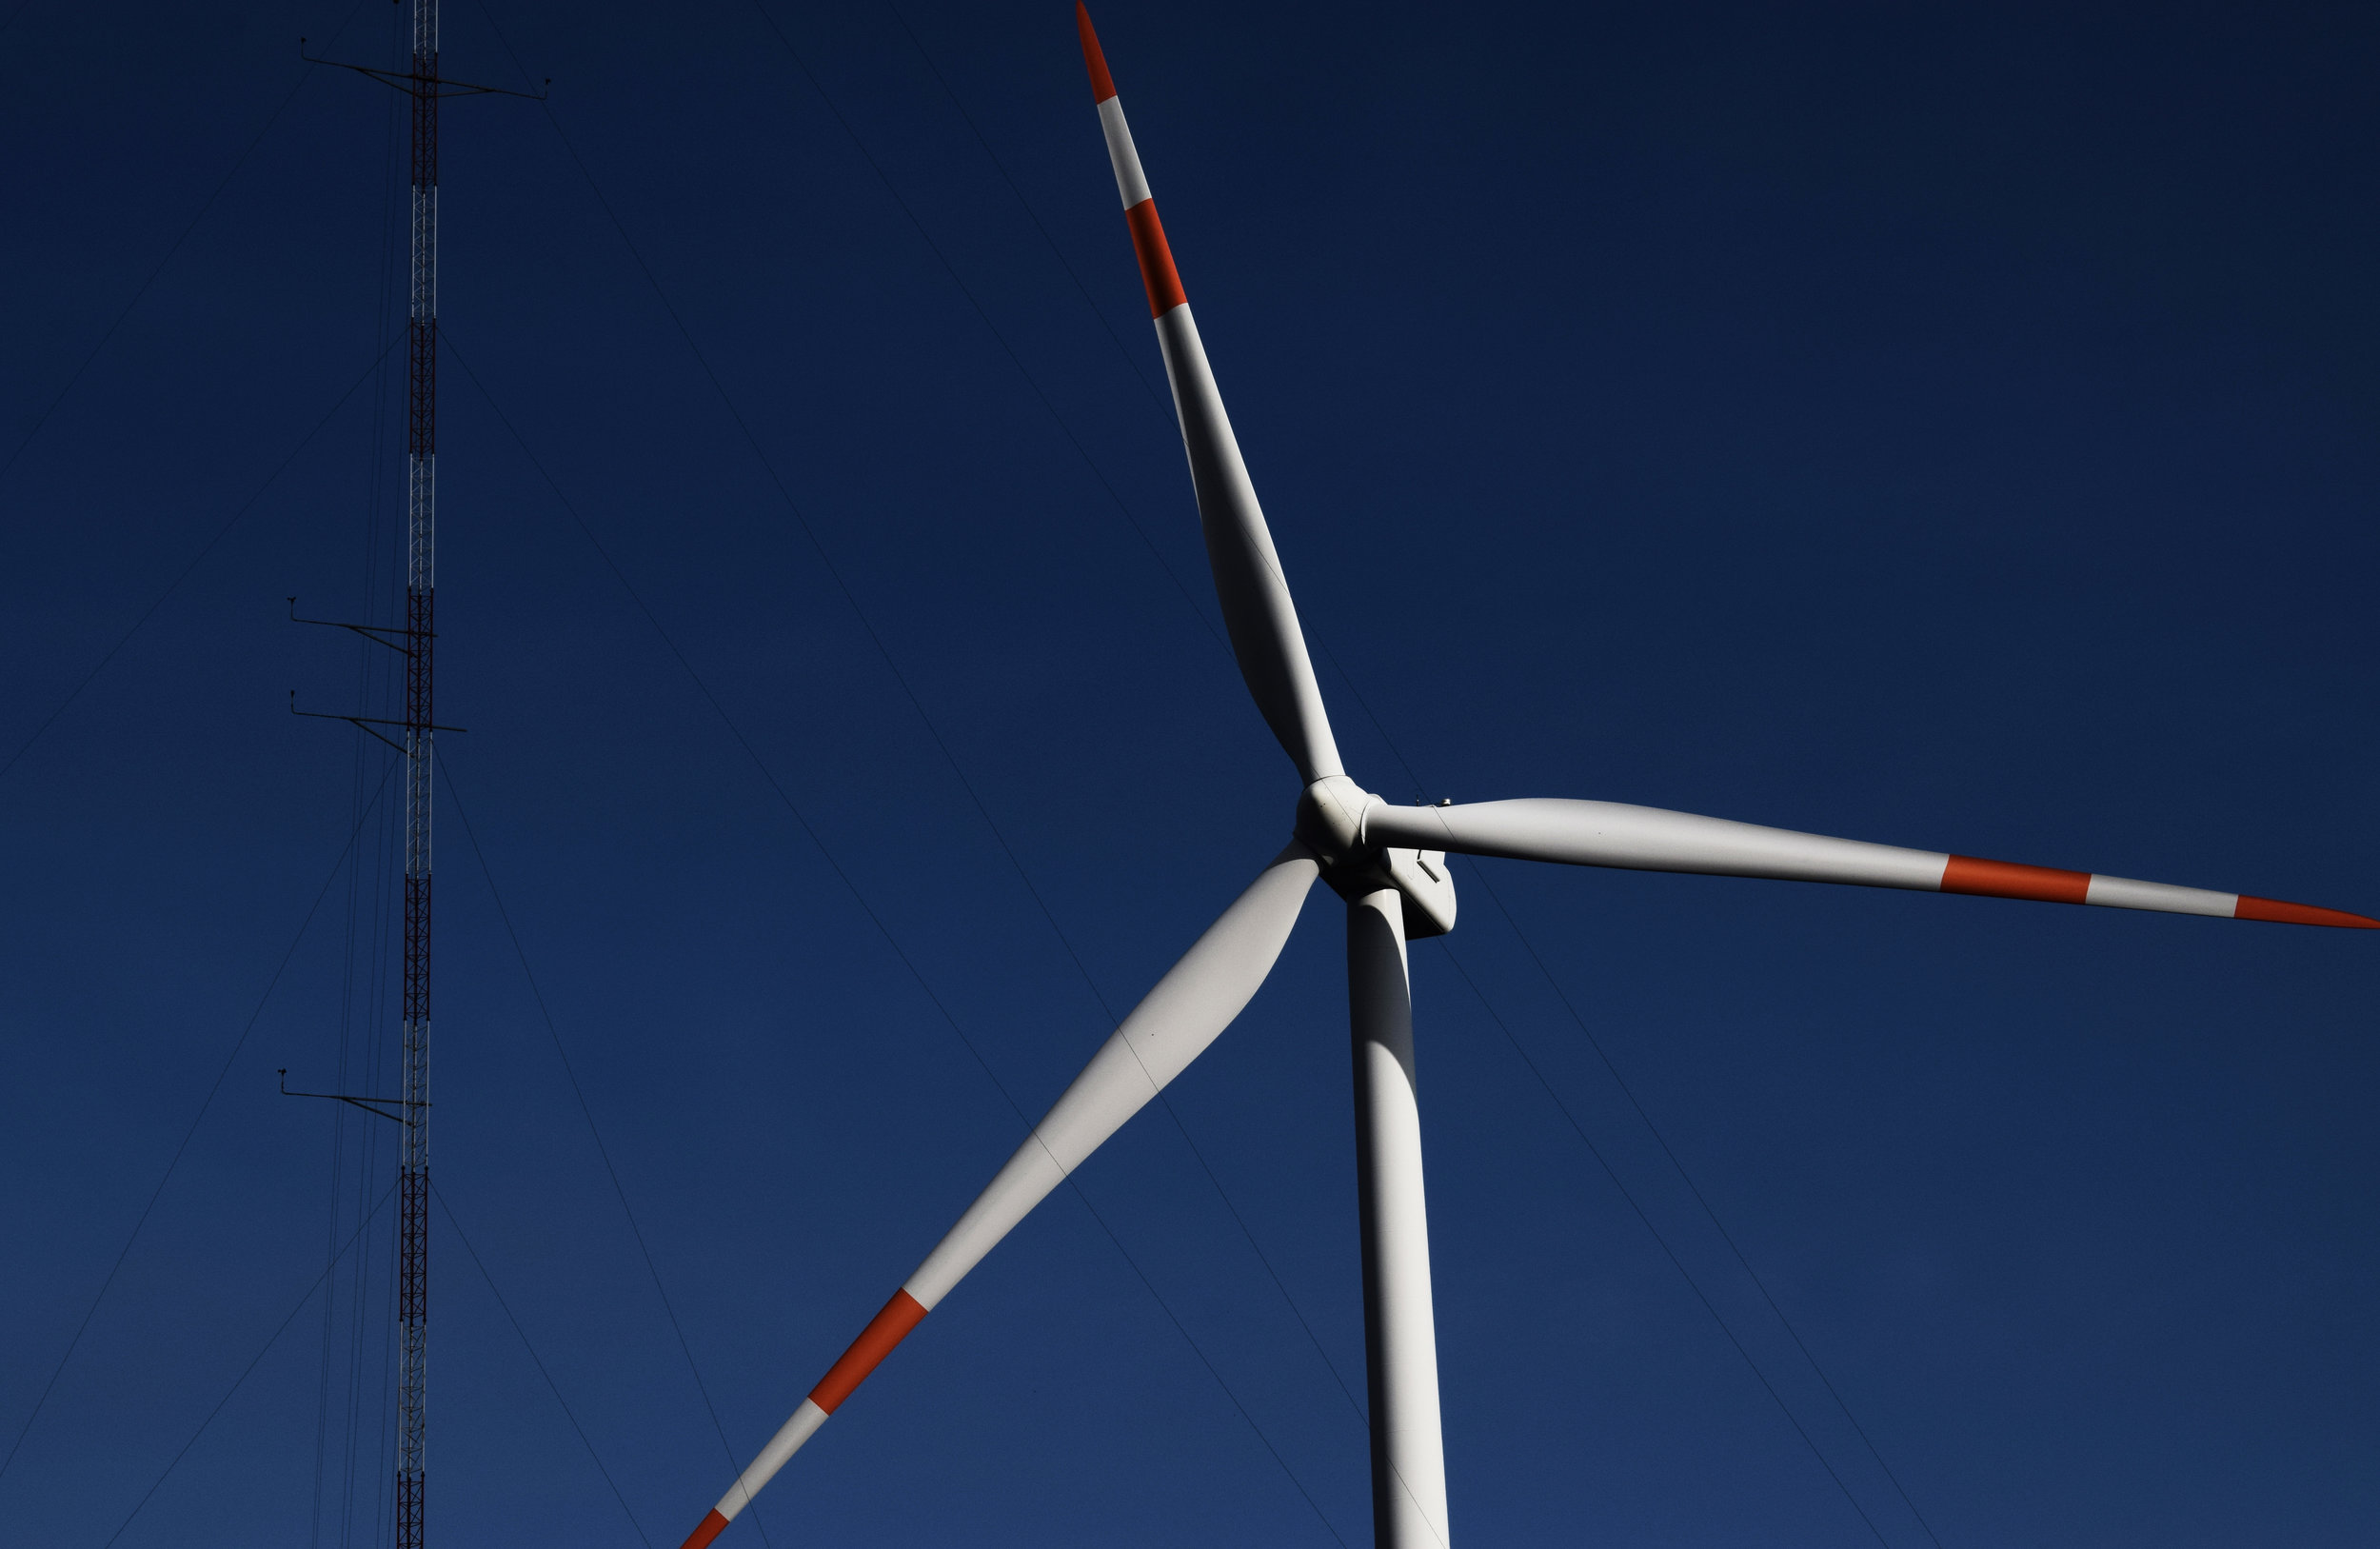 INFRASTRUCTURE FUND SNAPS UP WIND FARMS -